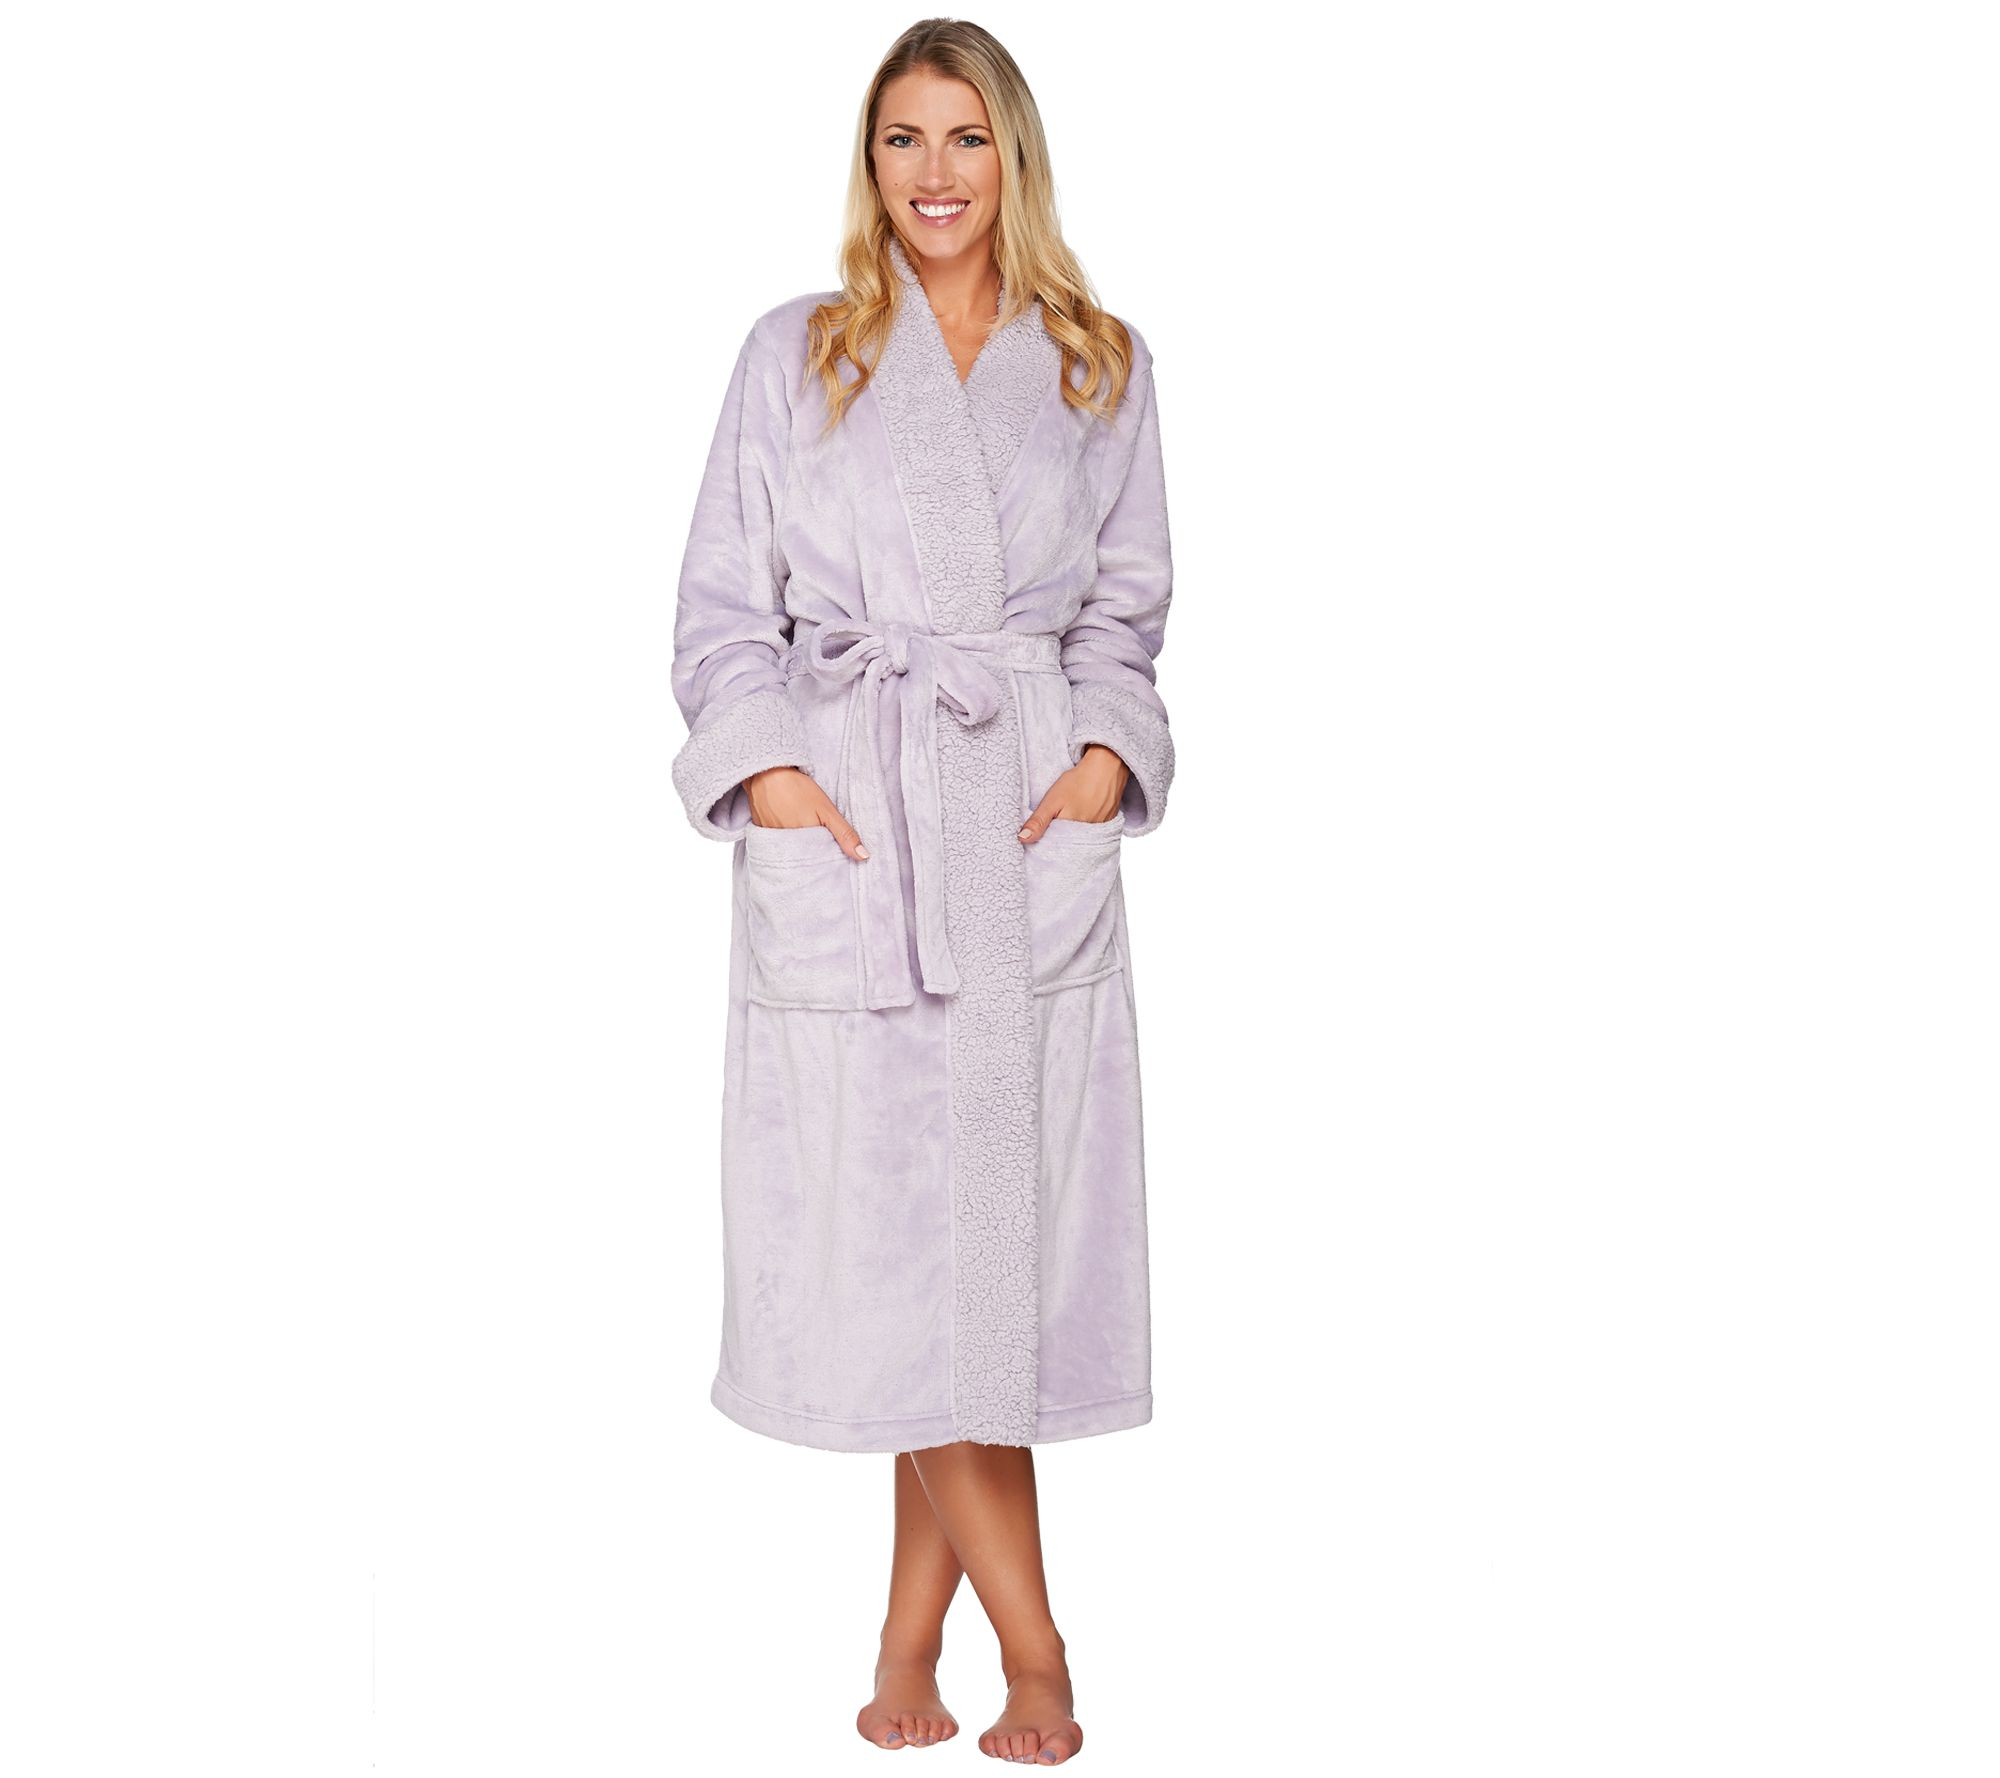 velvet soft full length kimono robe by berkshire blanket With berkshire blanket robe